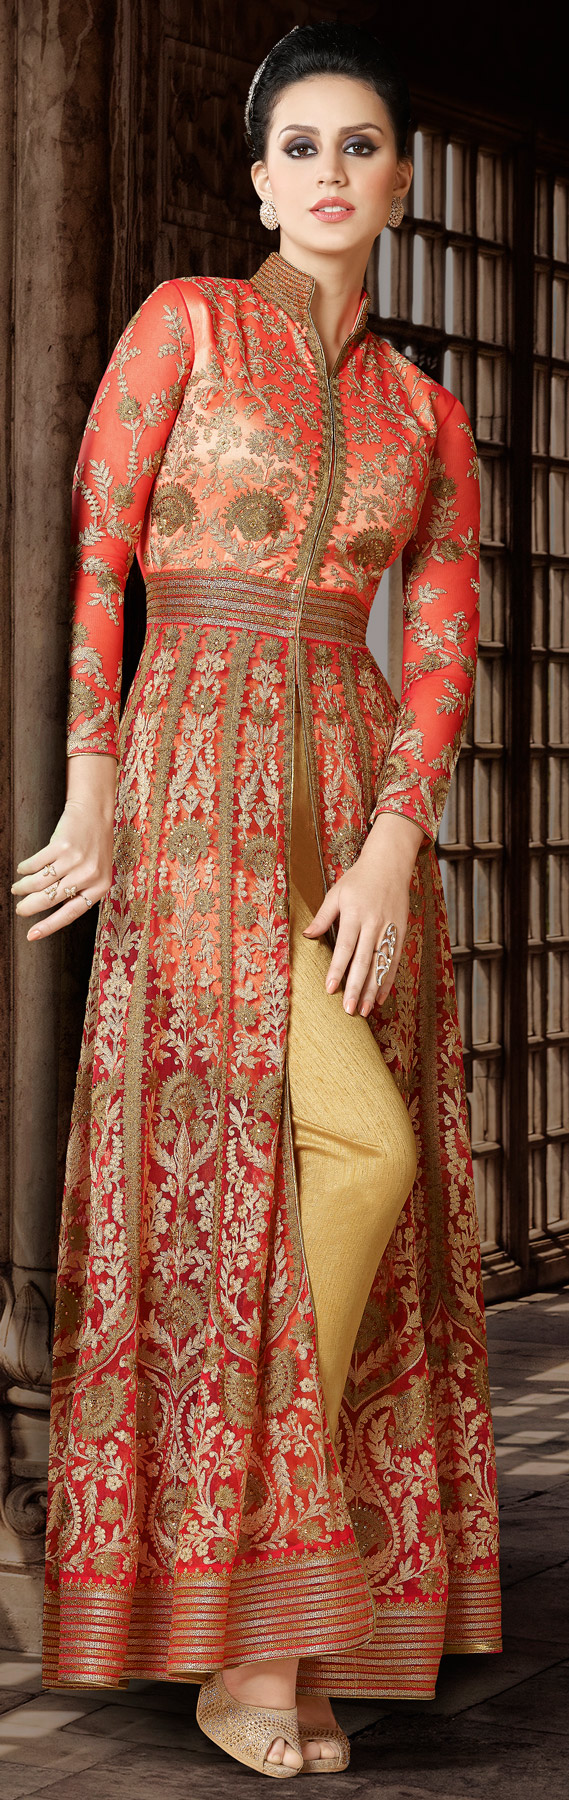 Flamboyant Orange Designer Embroidered Floor Length Premium Net Suit